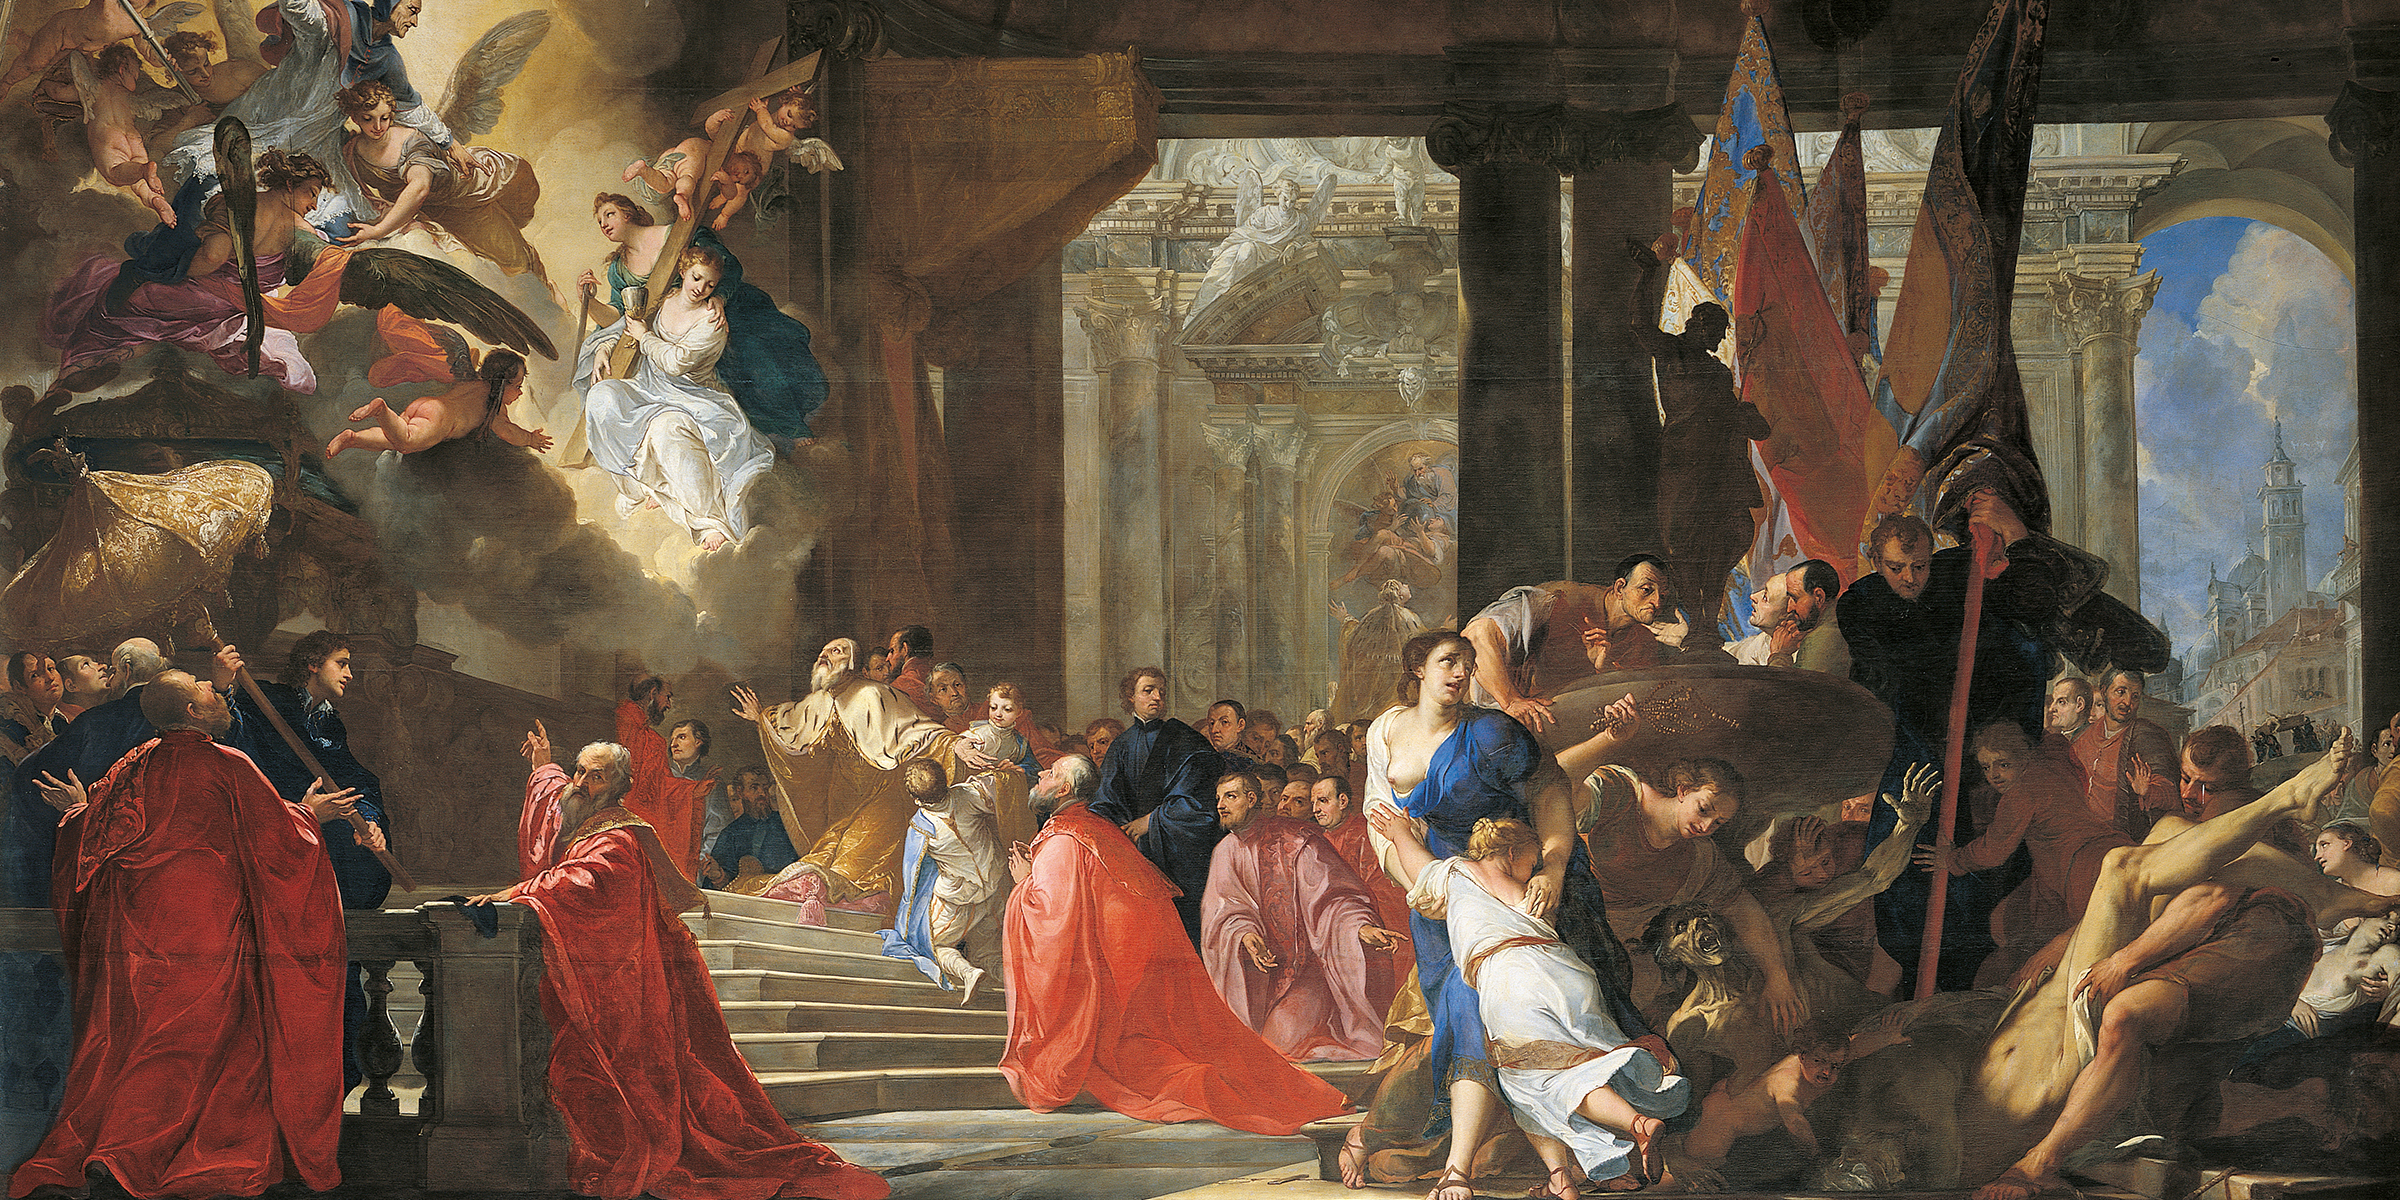 The Doge Praying for the End of the Plague, by Antonio Bellucci, c. 1691